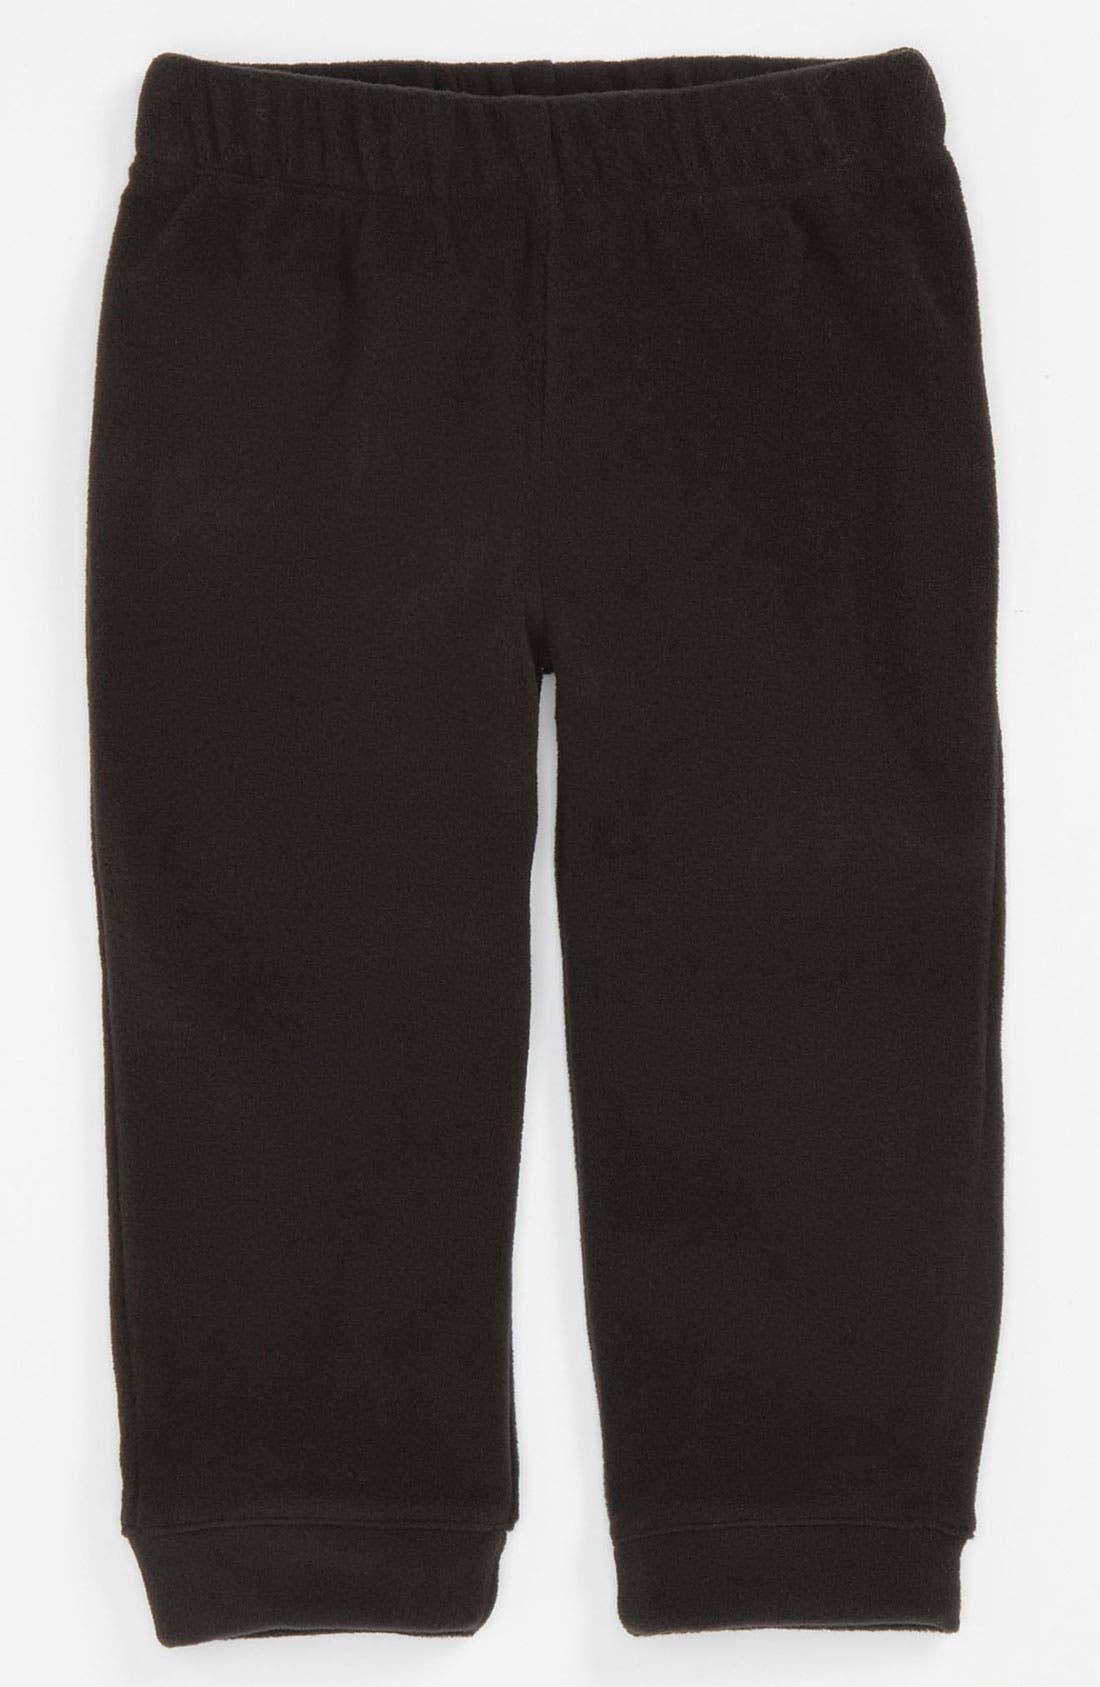 Alternate Image 1 Selected - The North Face 'Glacier' Pants (Infant)